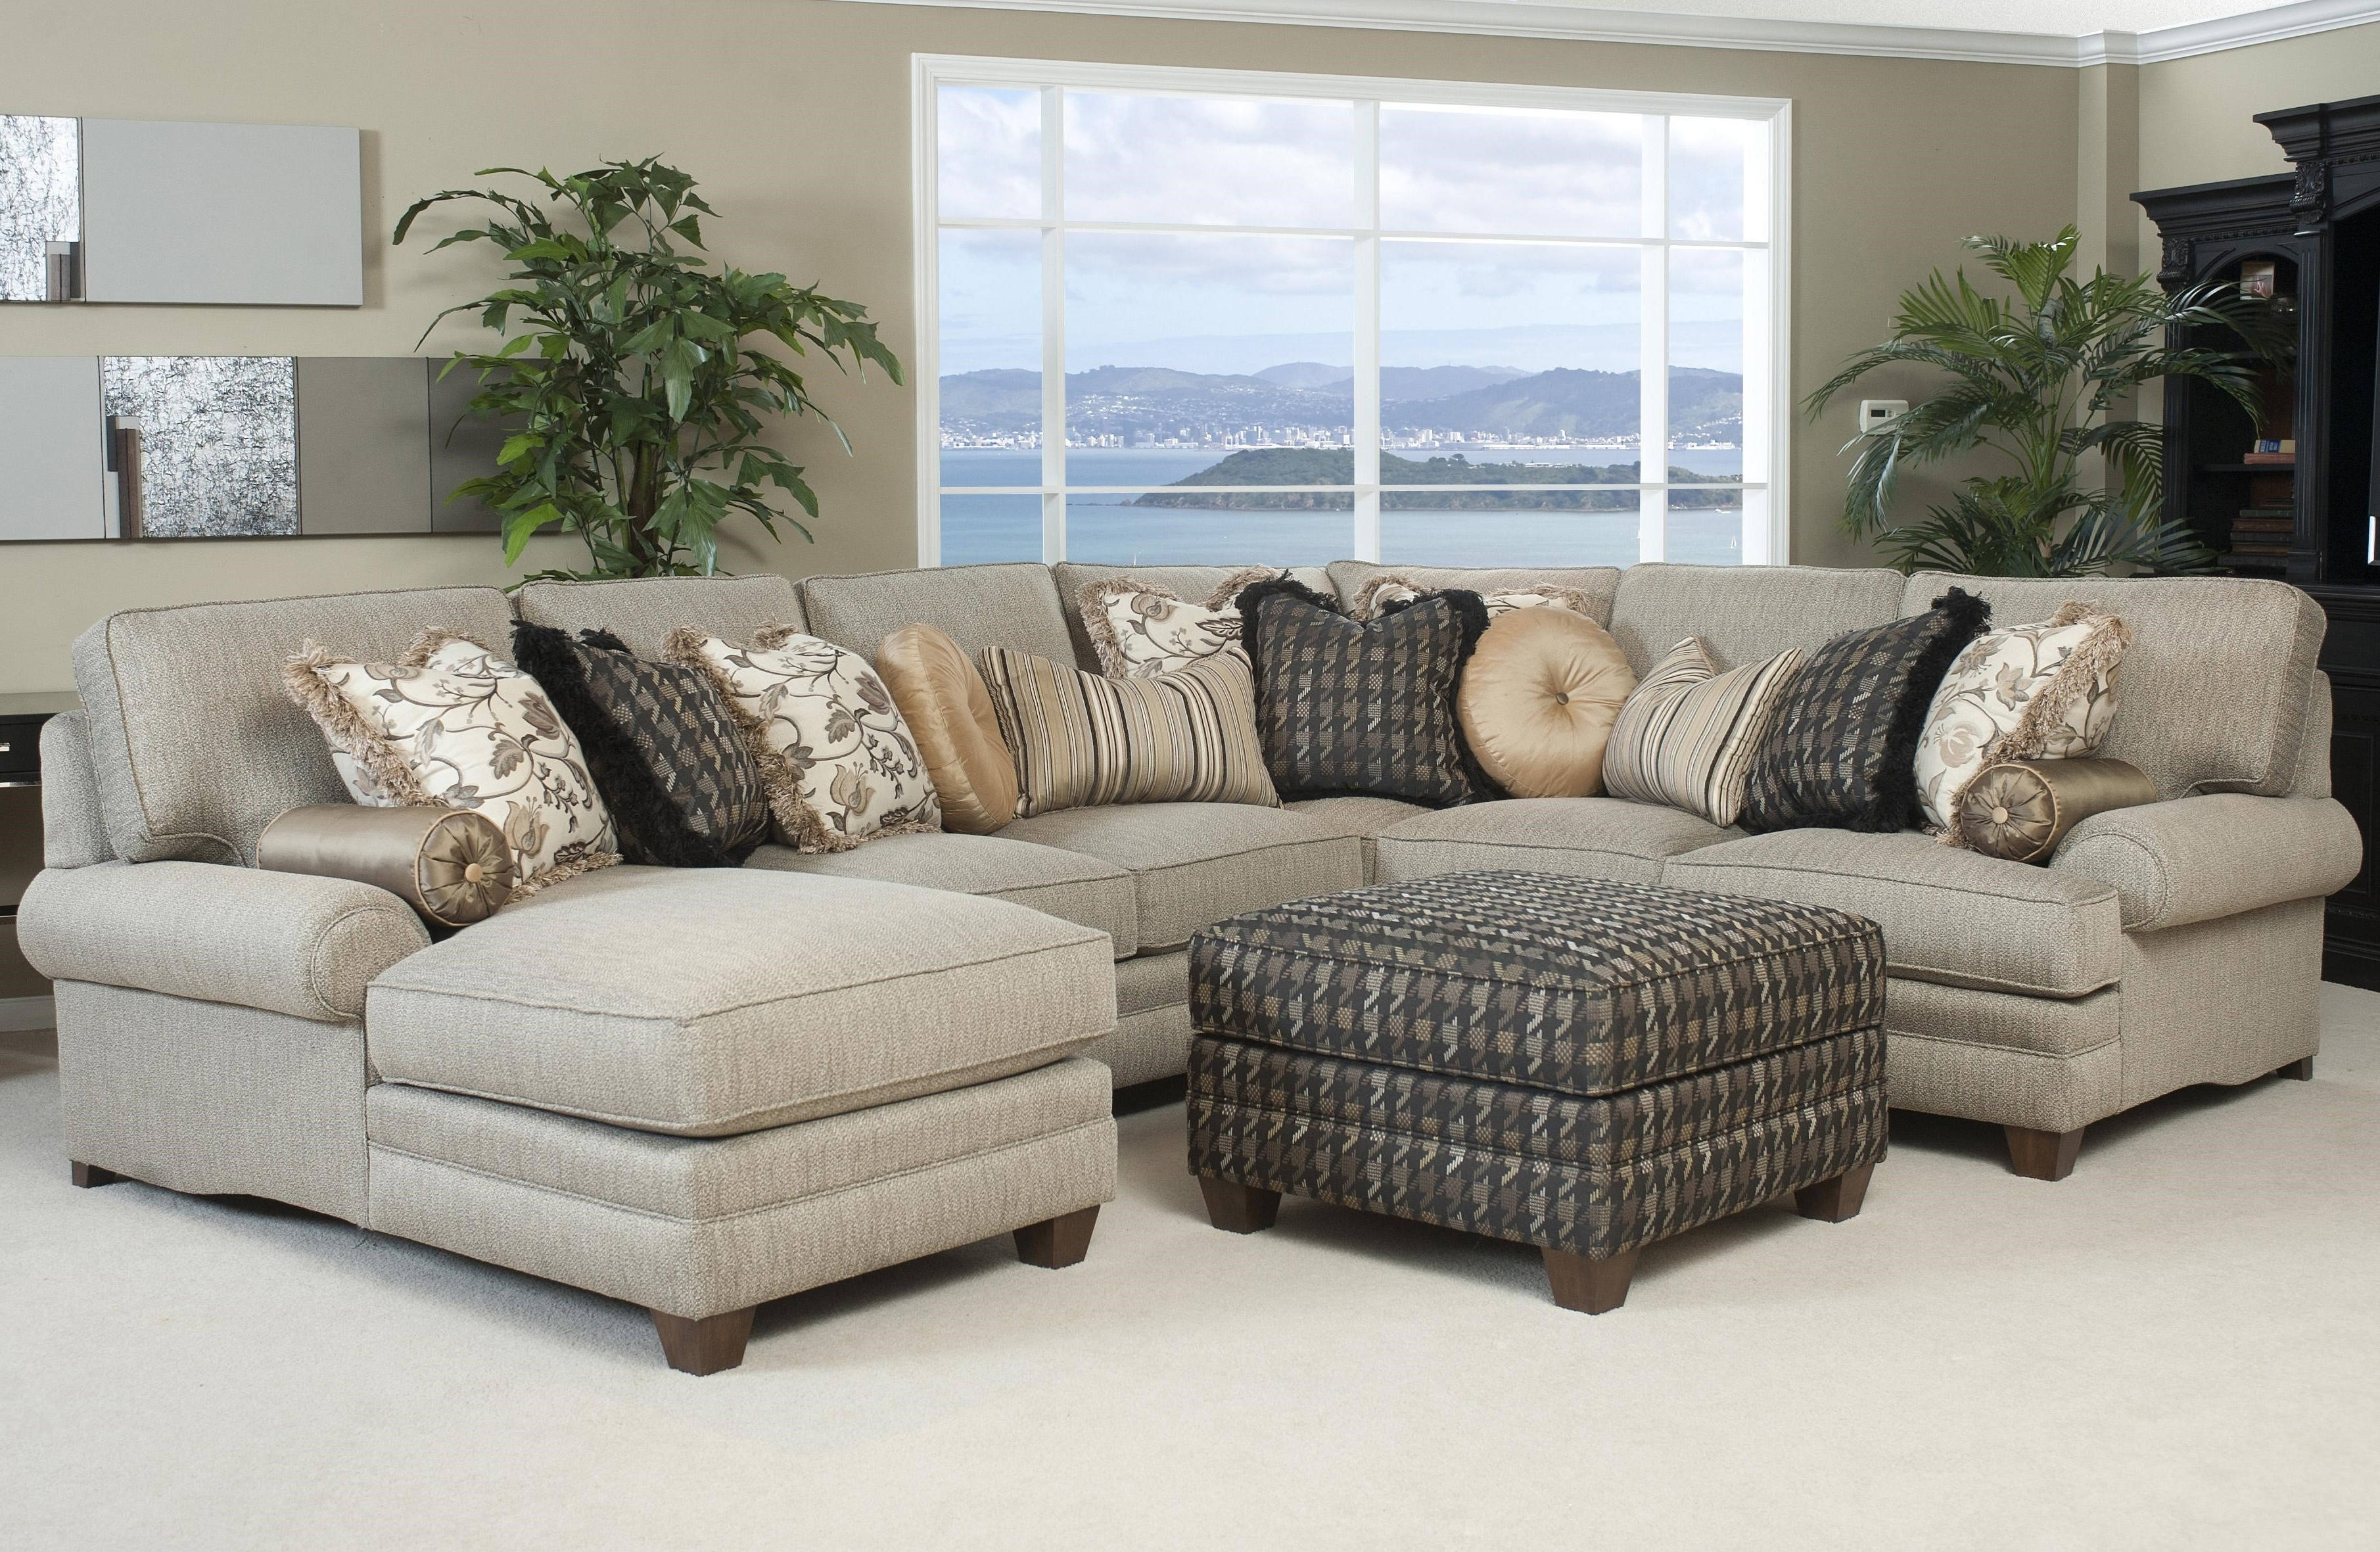 Comfortable Couches (View 2 of 15)